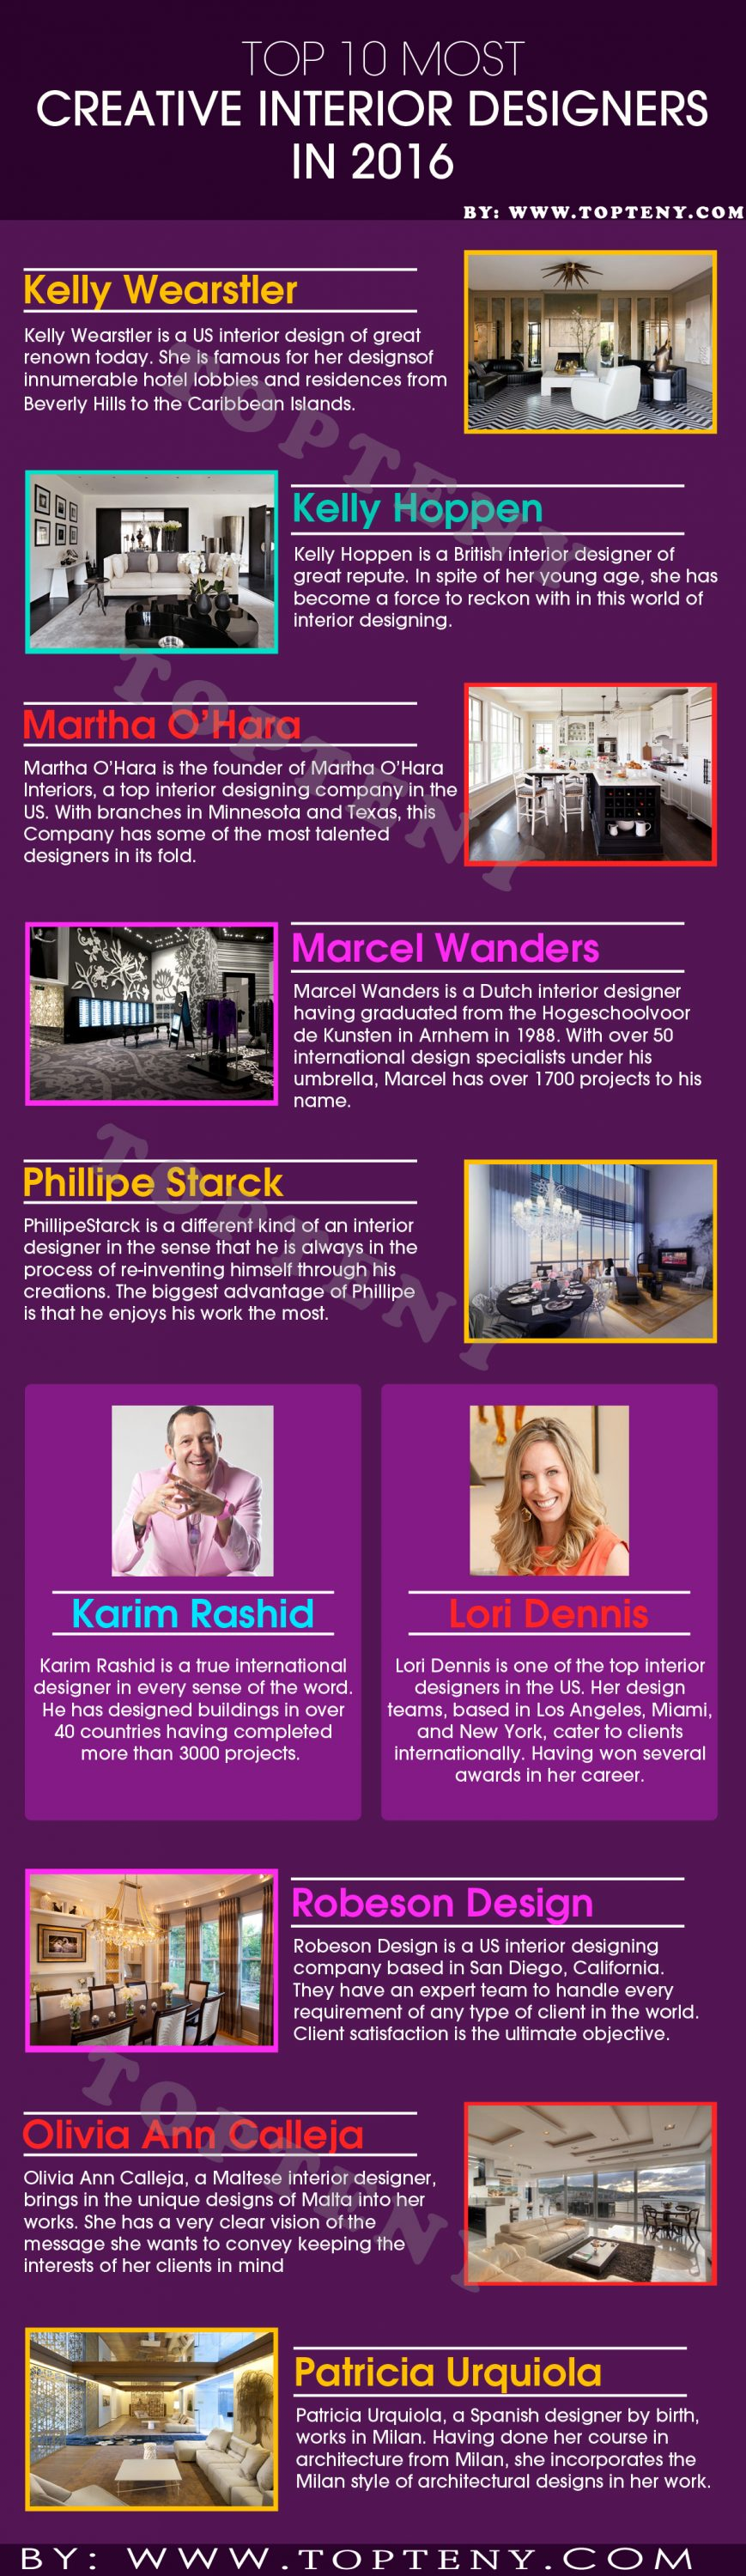 Top 10 Most Creative Interior Designers in 2016 infographic